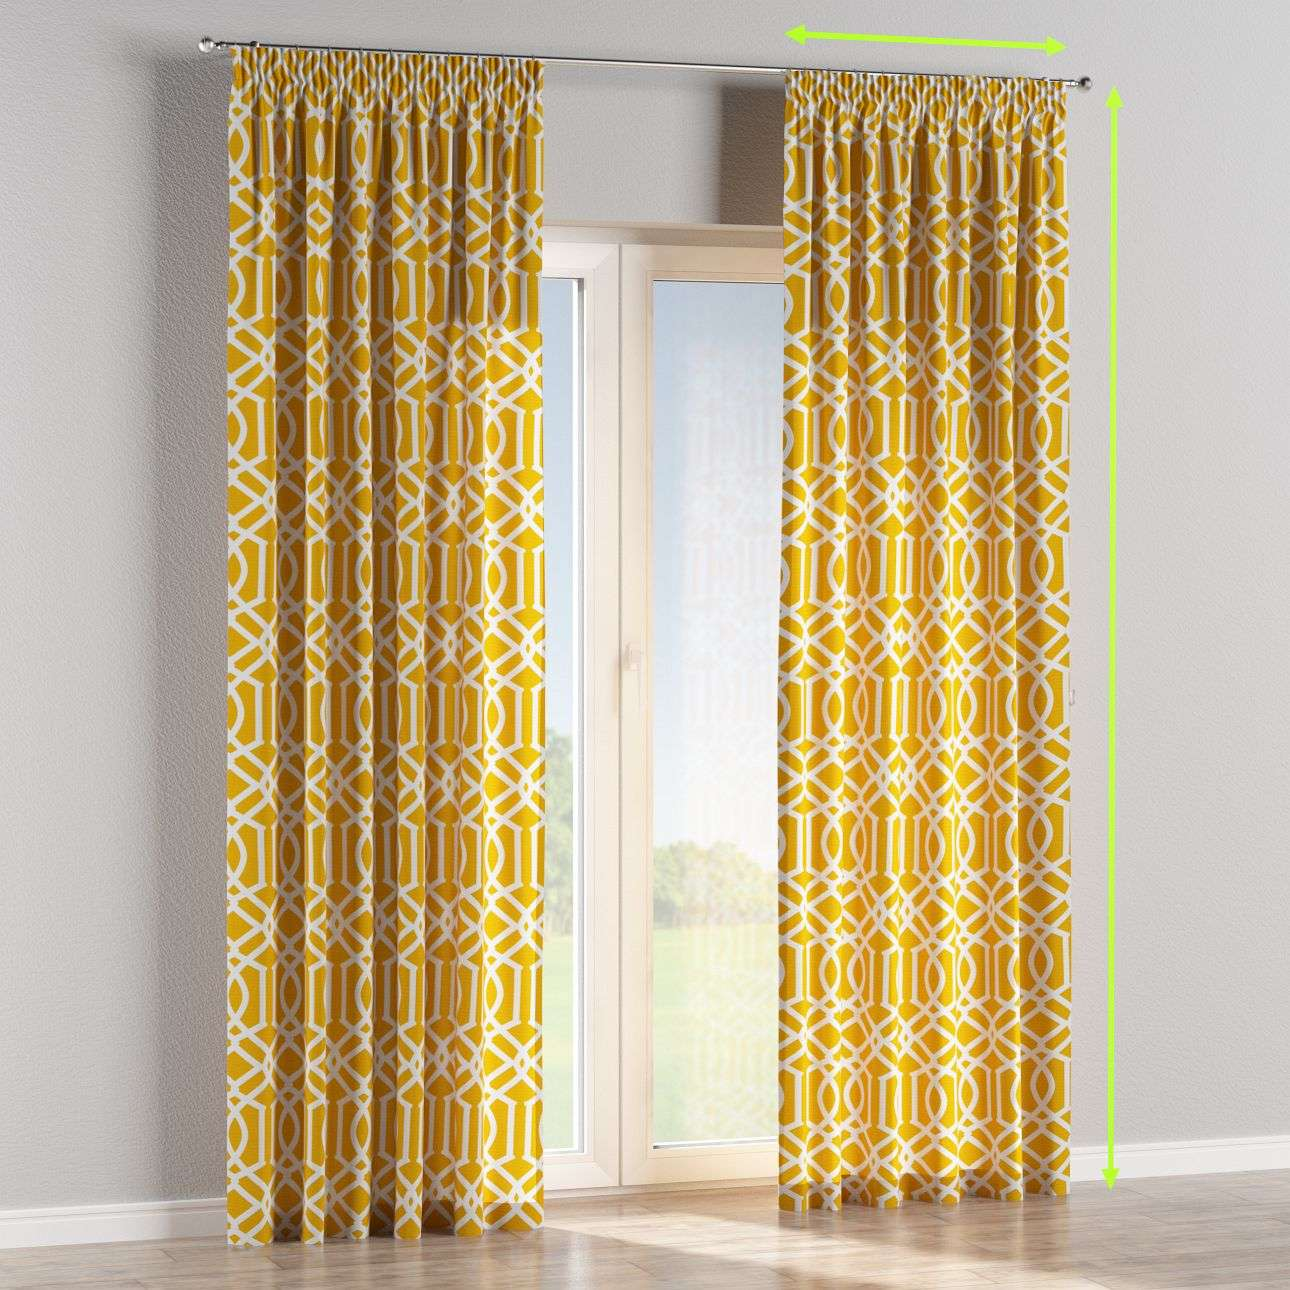 Pencil pleat lined curtains in collection Comics/Geometrical, fabric: 135-09